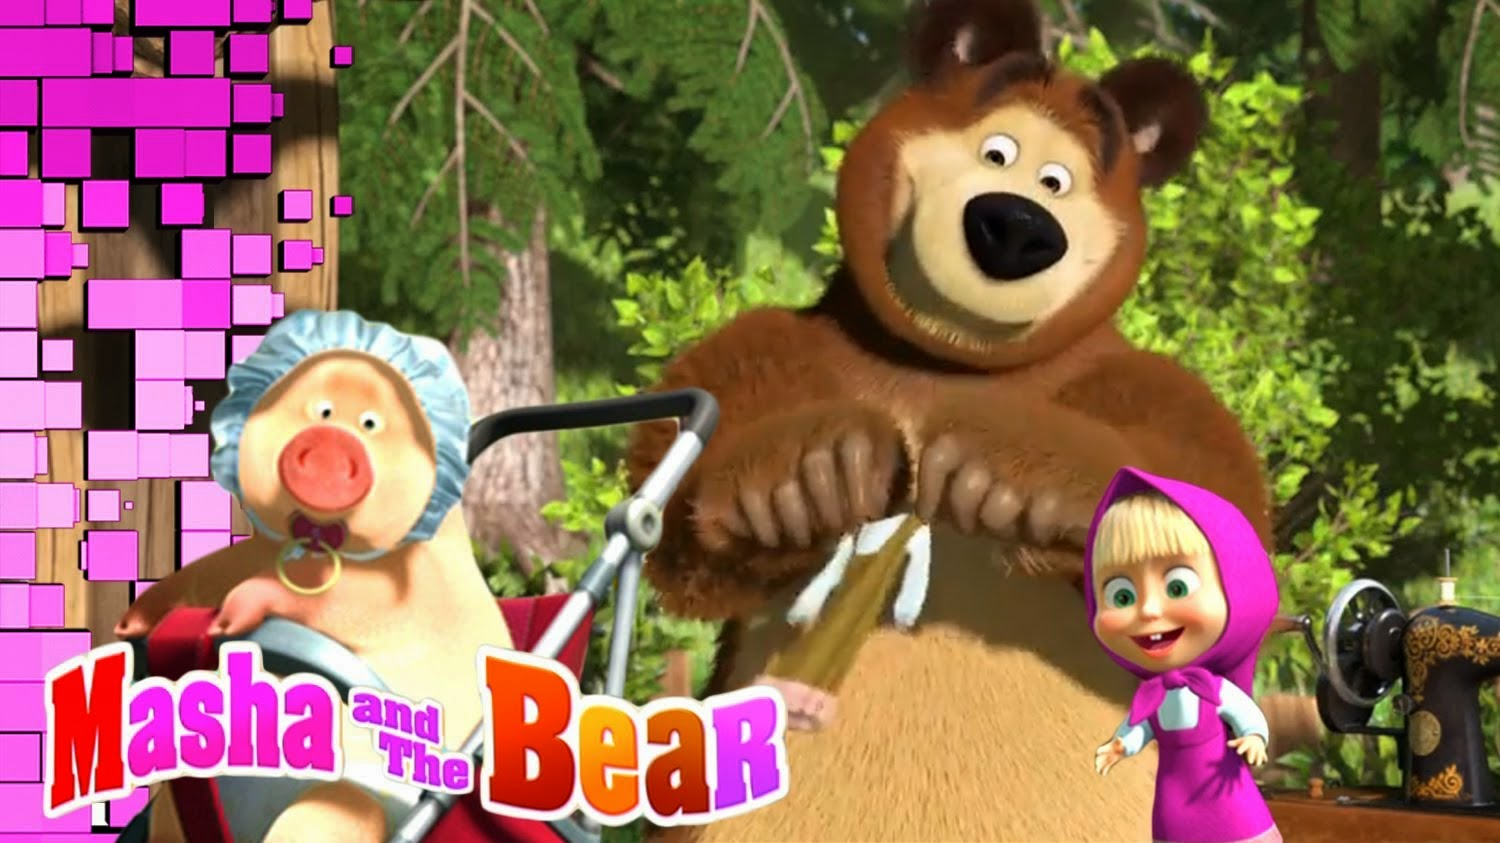 KUMPULAN GAMBAR MARSHA AND THE BEAR Gambar Kartun 3D Marsha The